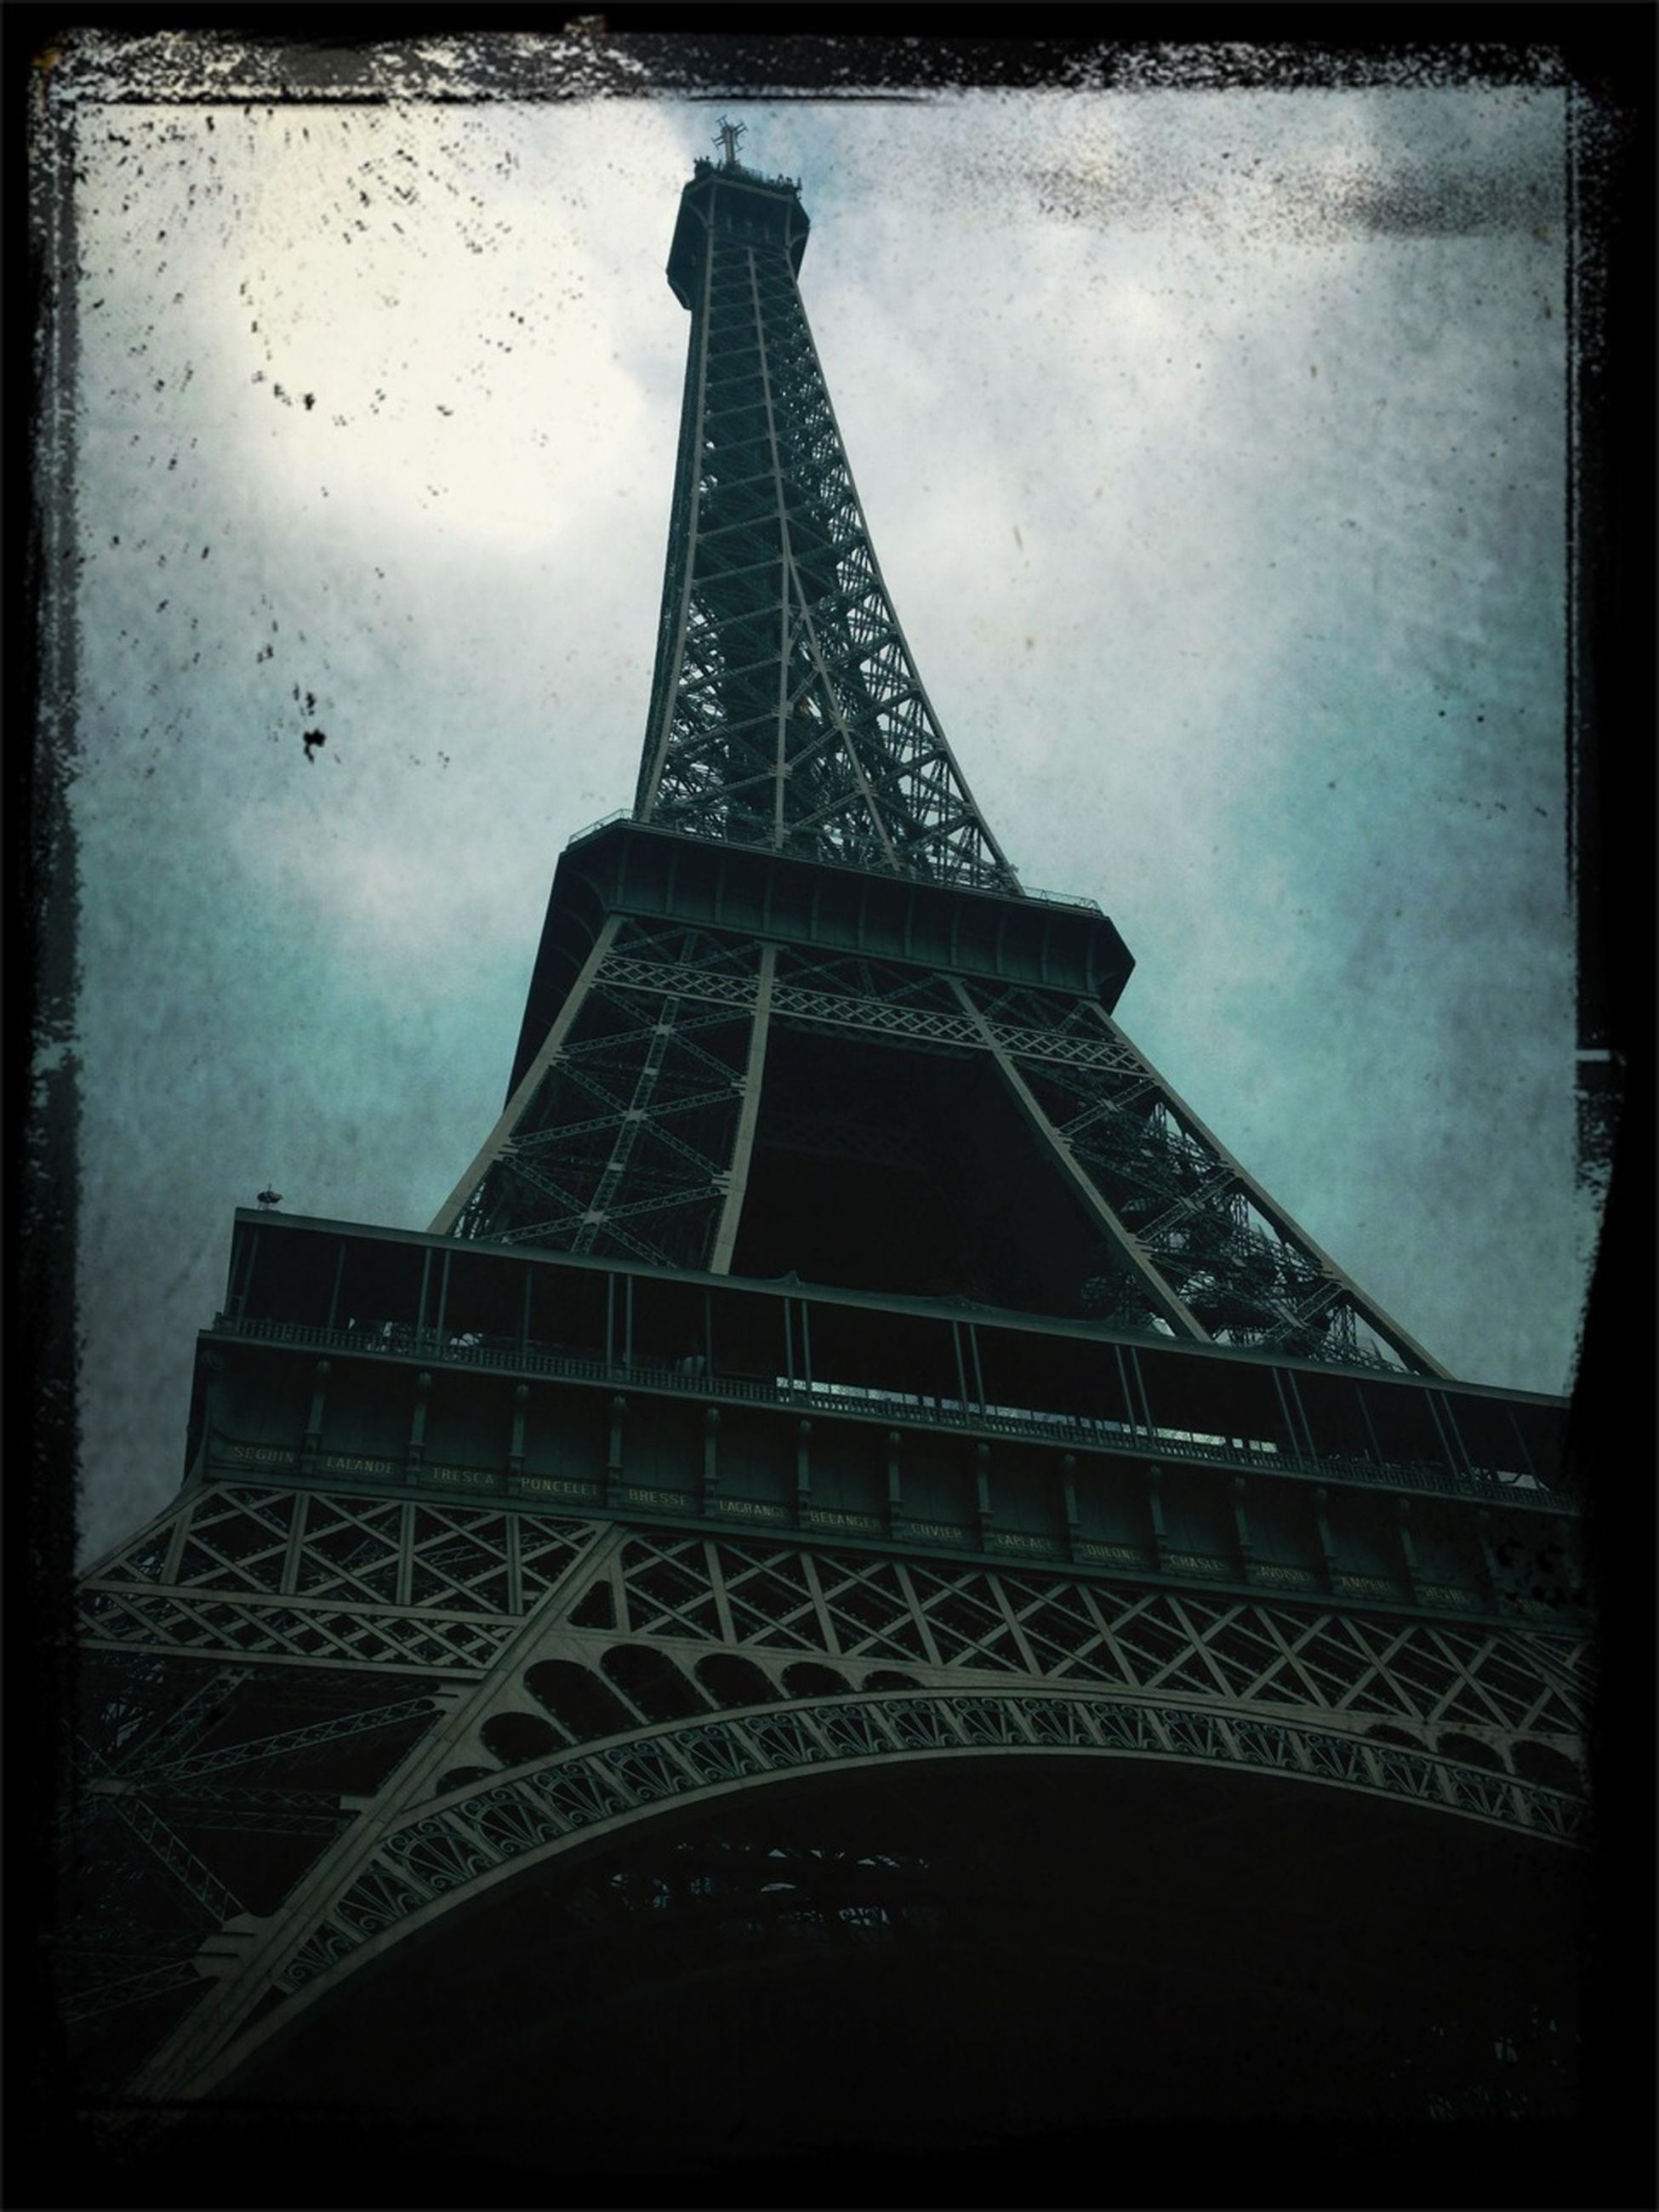 eiffel tower, international landmark, architecture, famous place, built structure, culture, travel destinations, low angle view, transfer print, tourism, capital cities, tower, travel, metal, tall - high, history, sky, auto post production filter, architectural feature, metallic